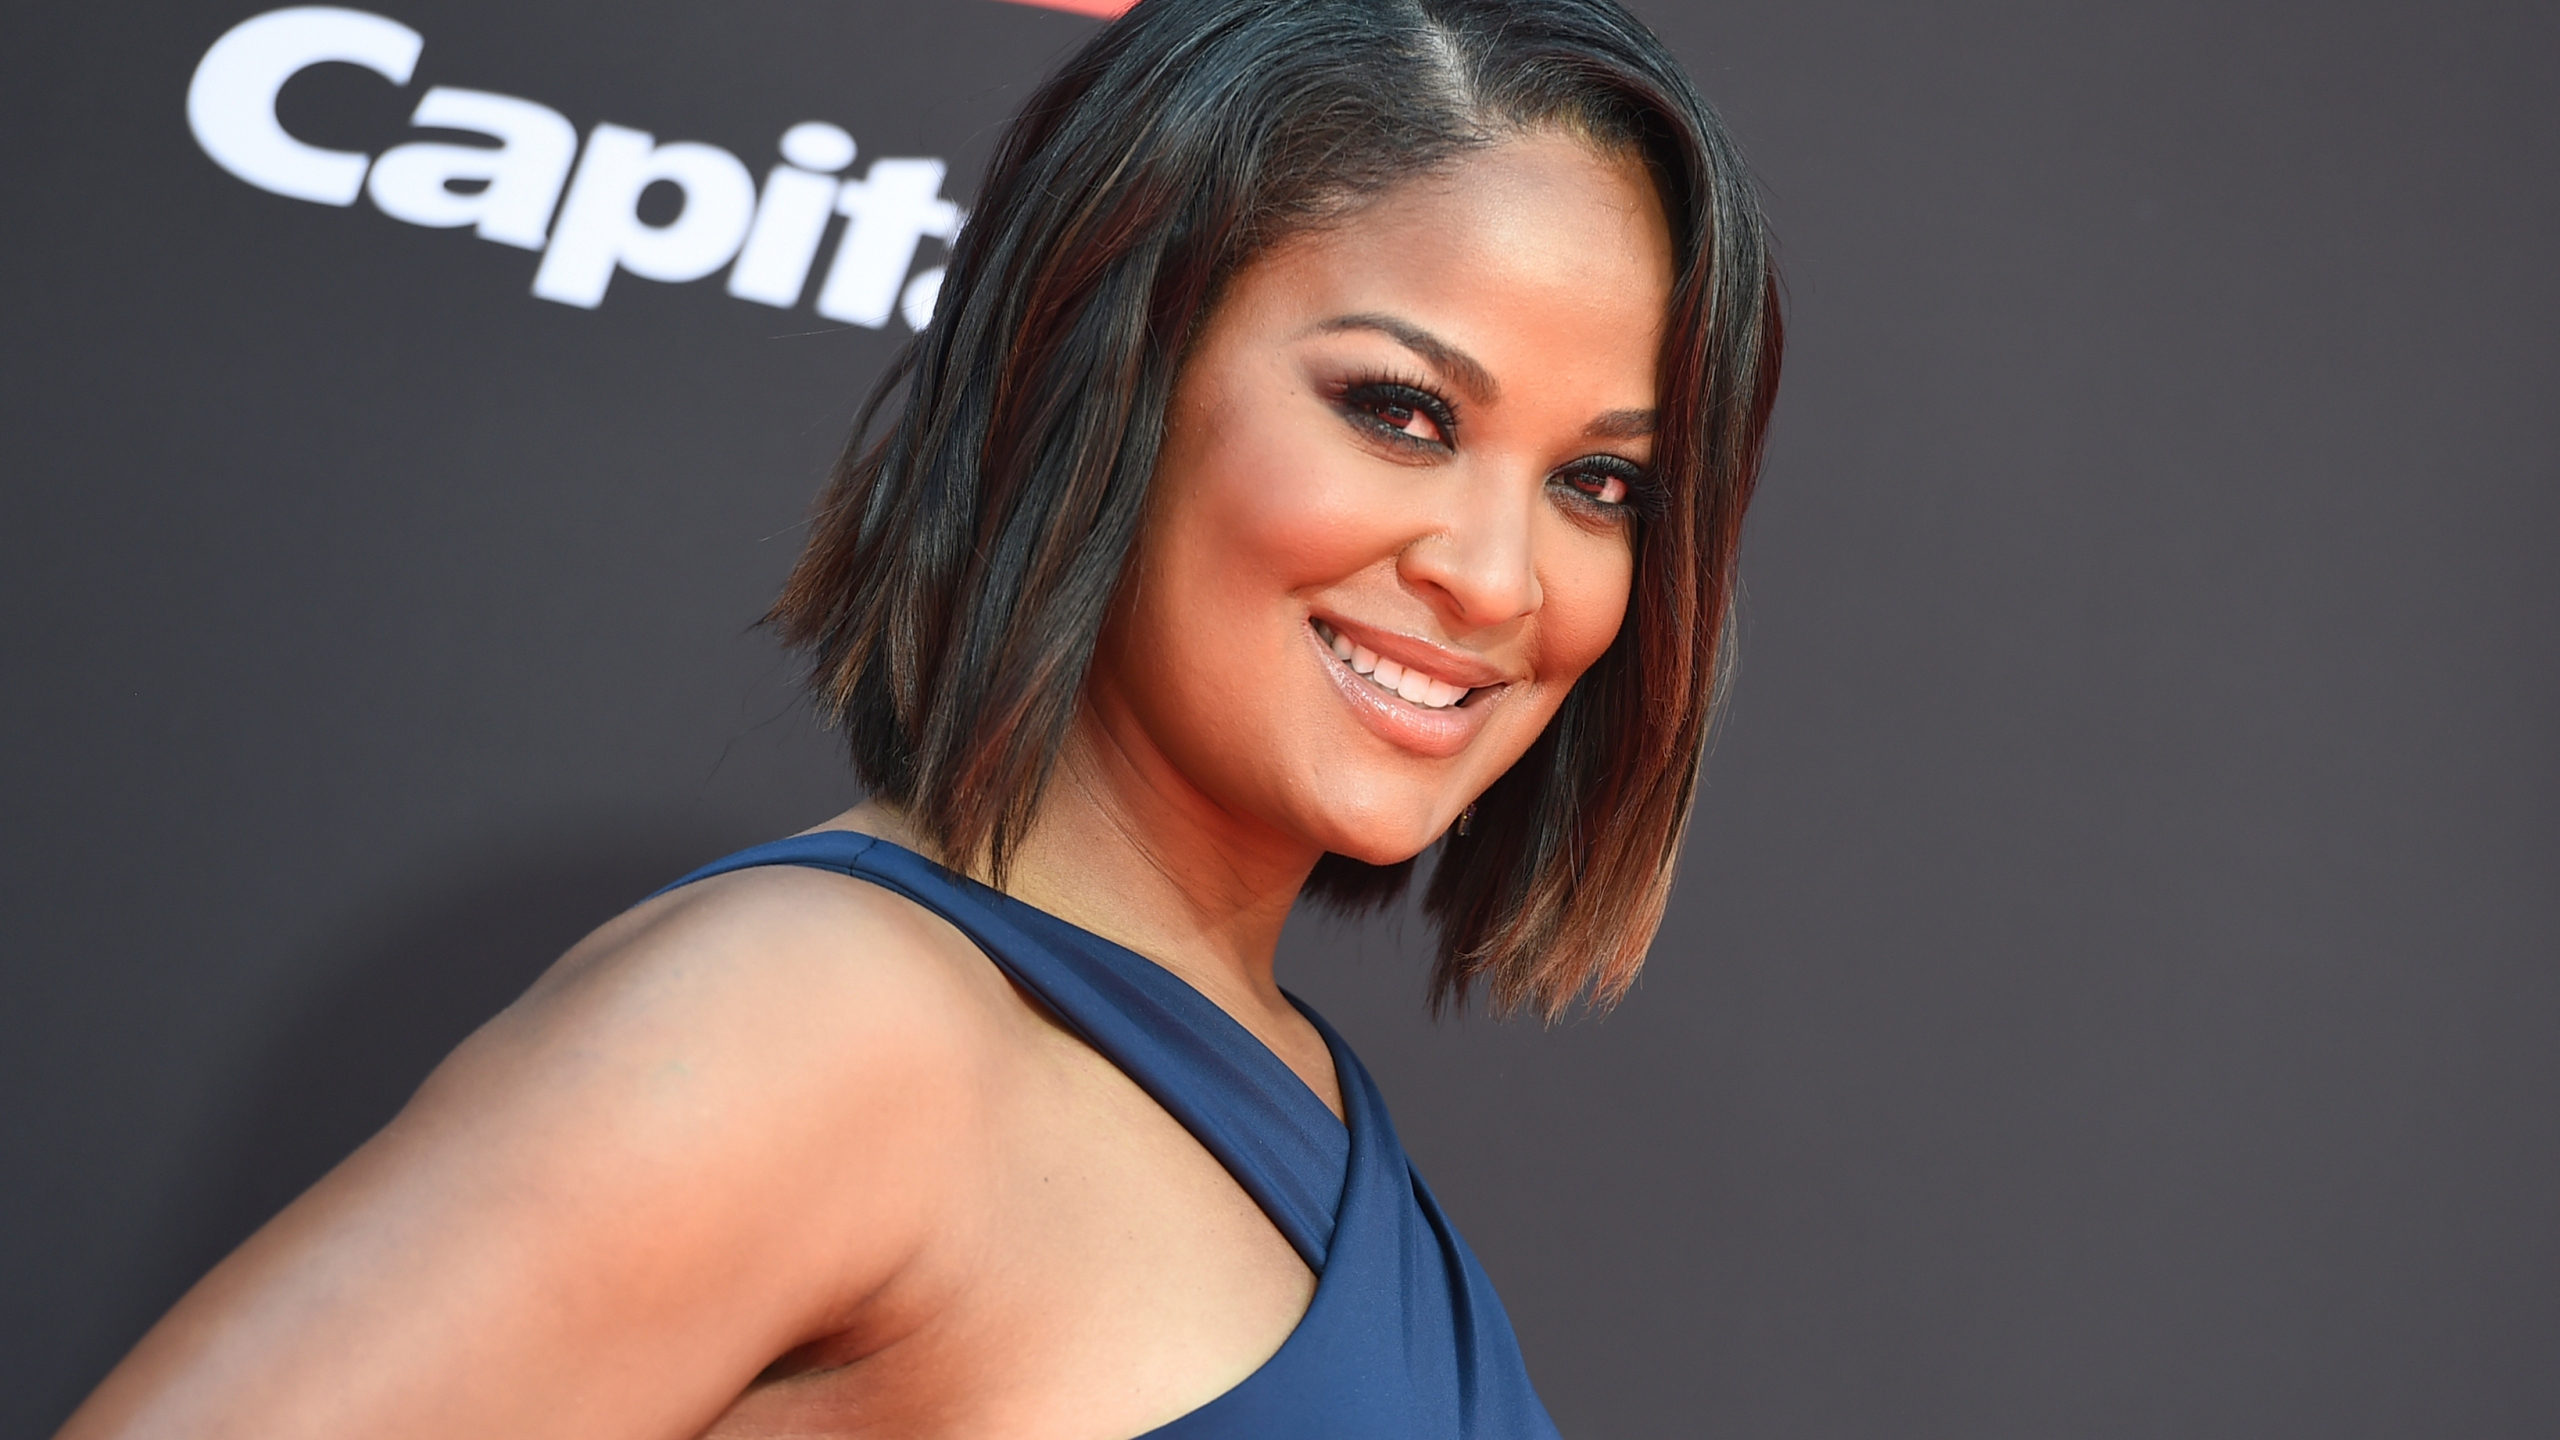 Pin by Михайло on Laila Ali in 2020   Laila ali, Hottest